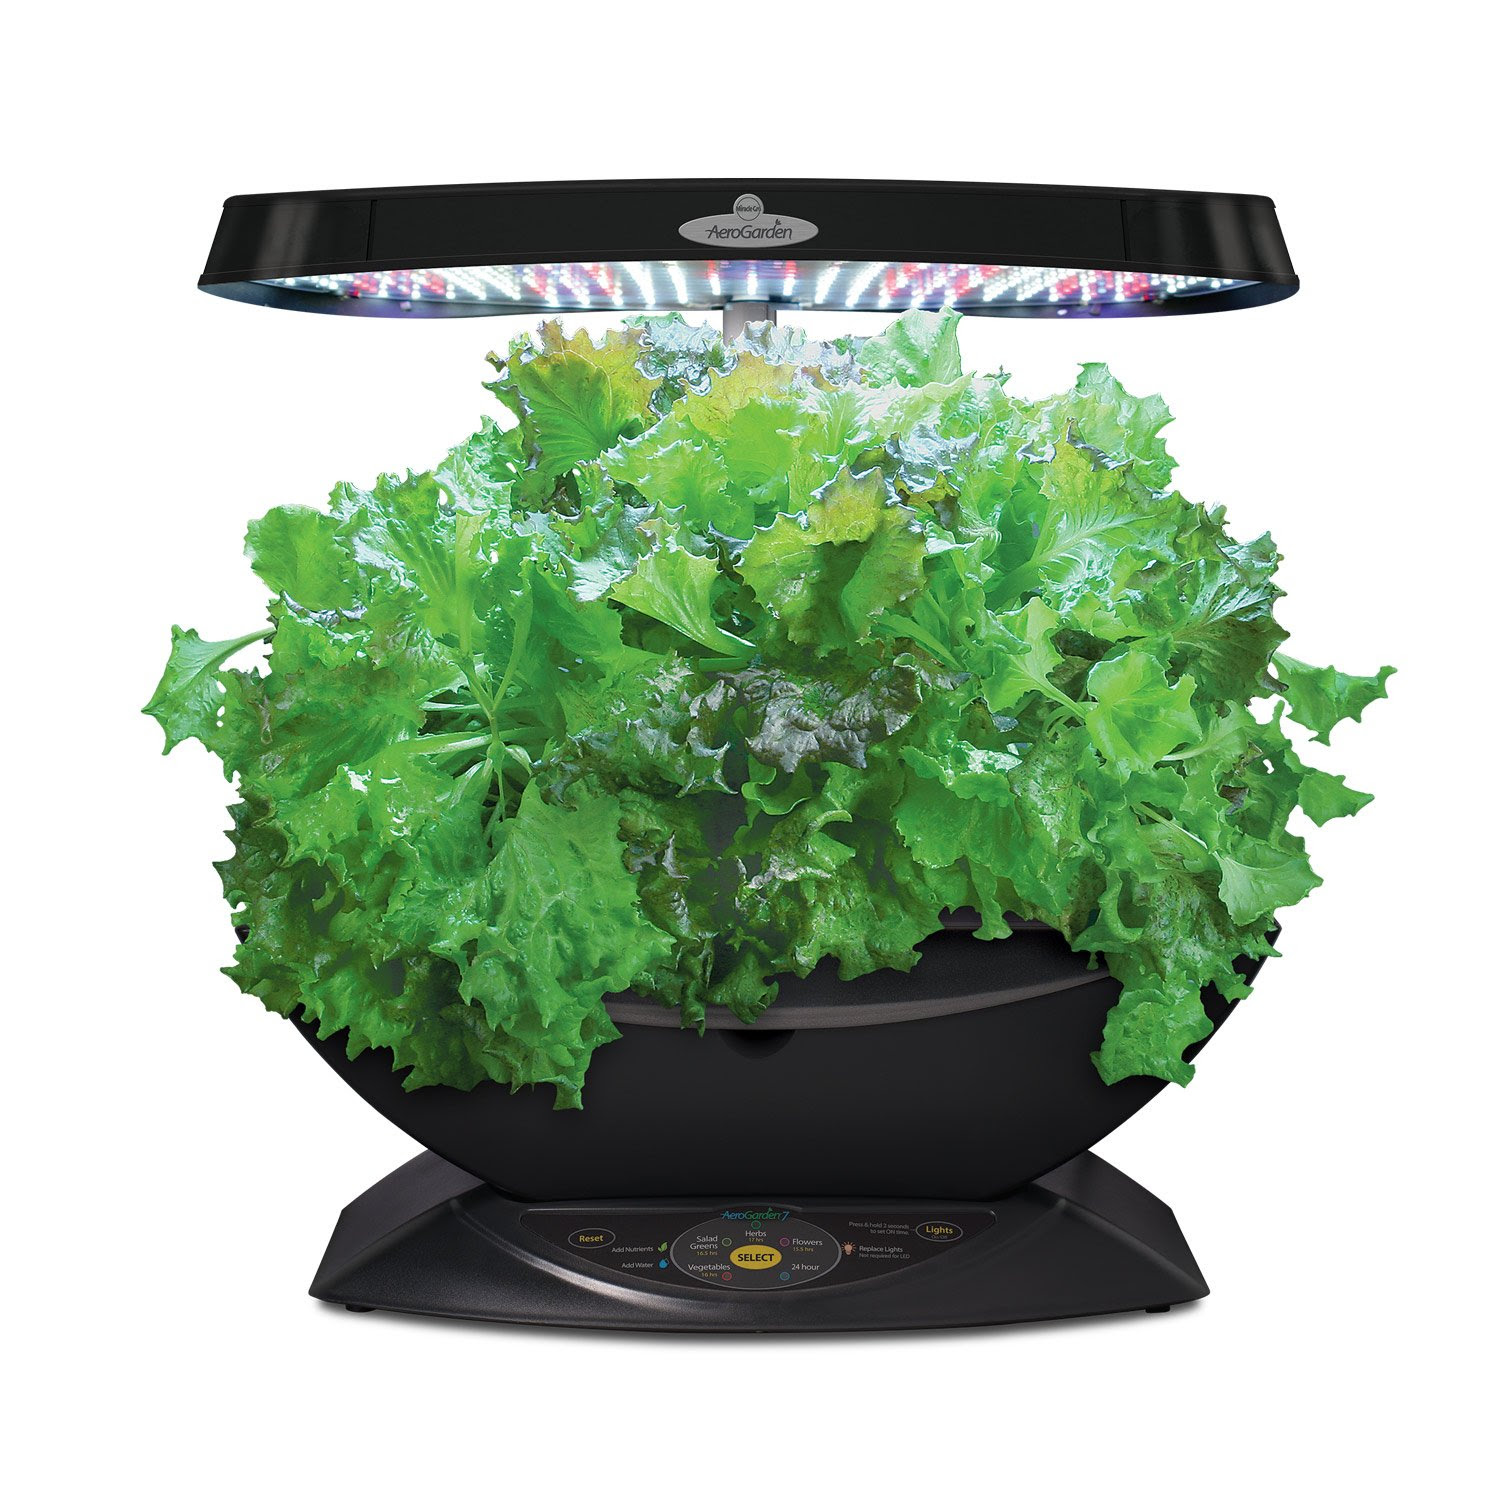 MiracleGro AeroGarden 7Pod LED Indoor Garden with Gourmet Herb Seed Kit , New,  eBay